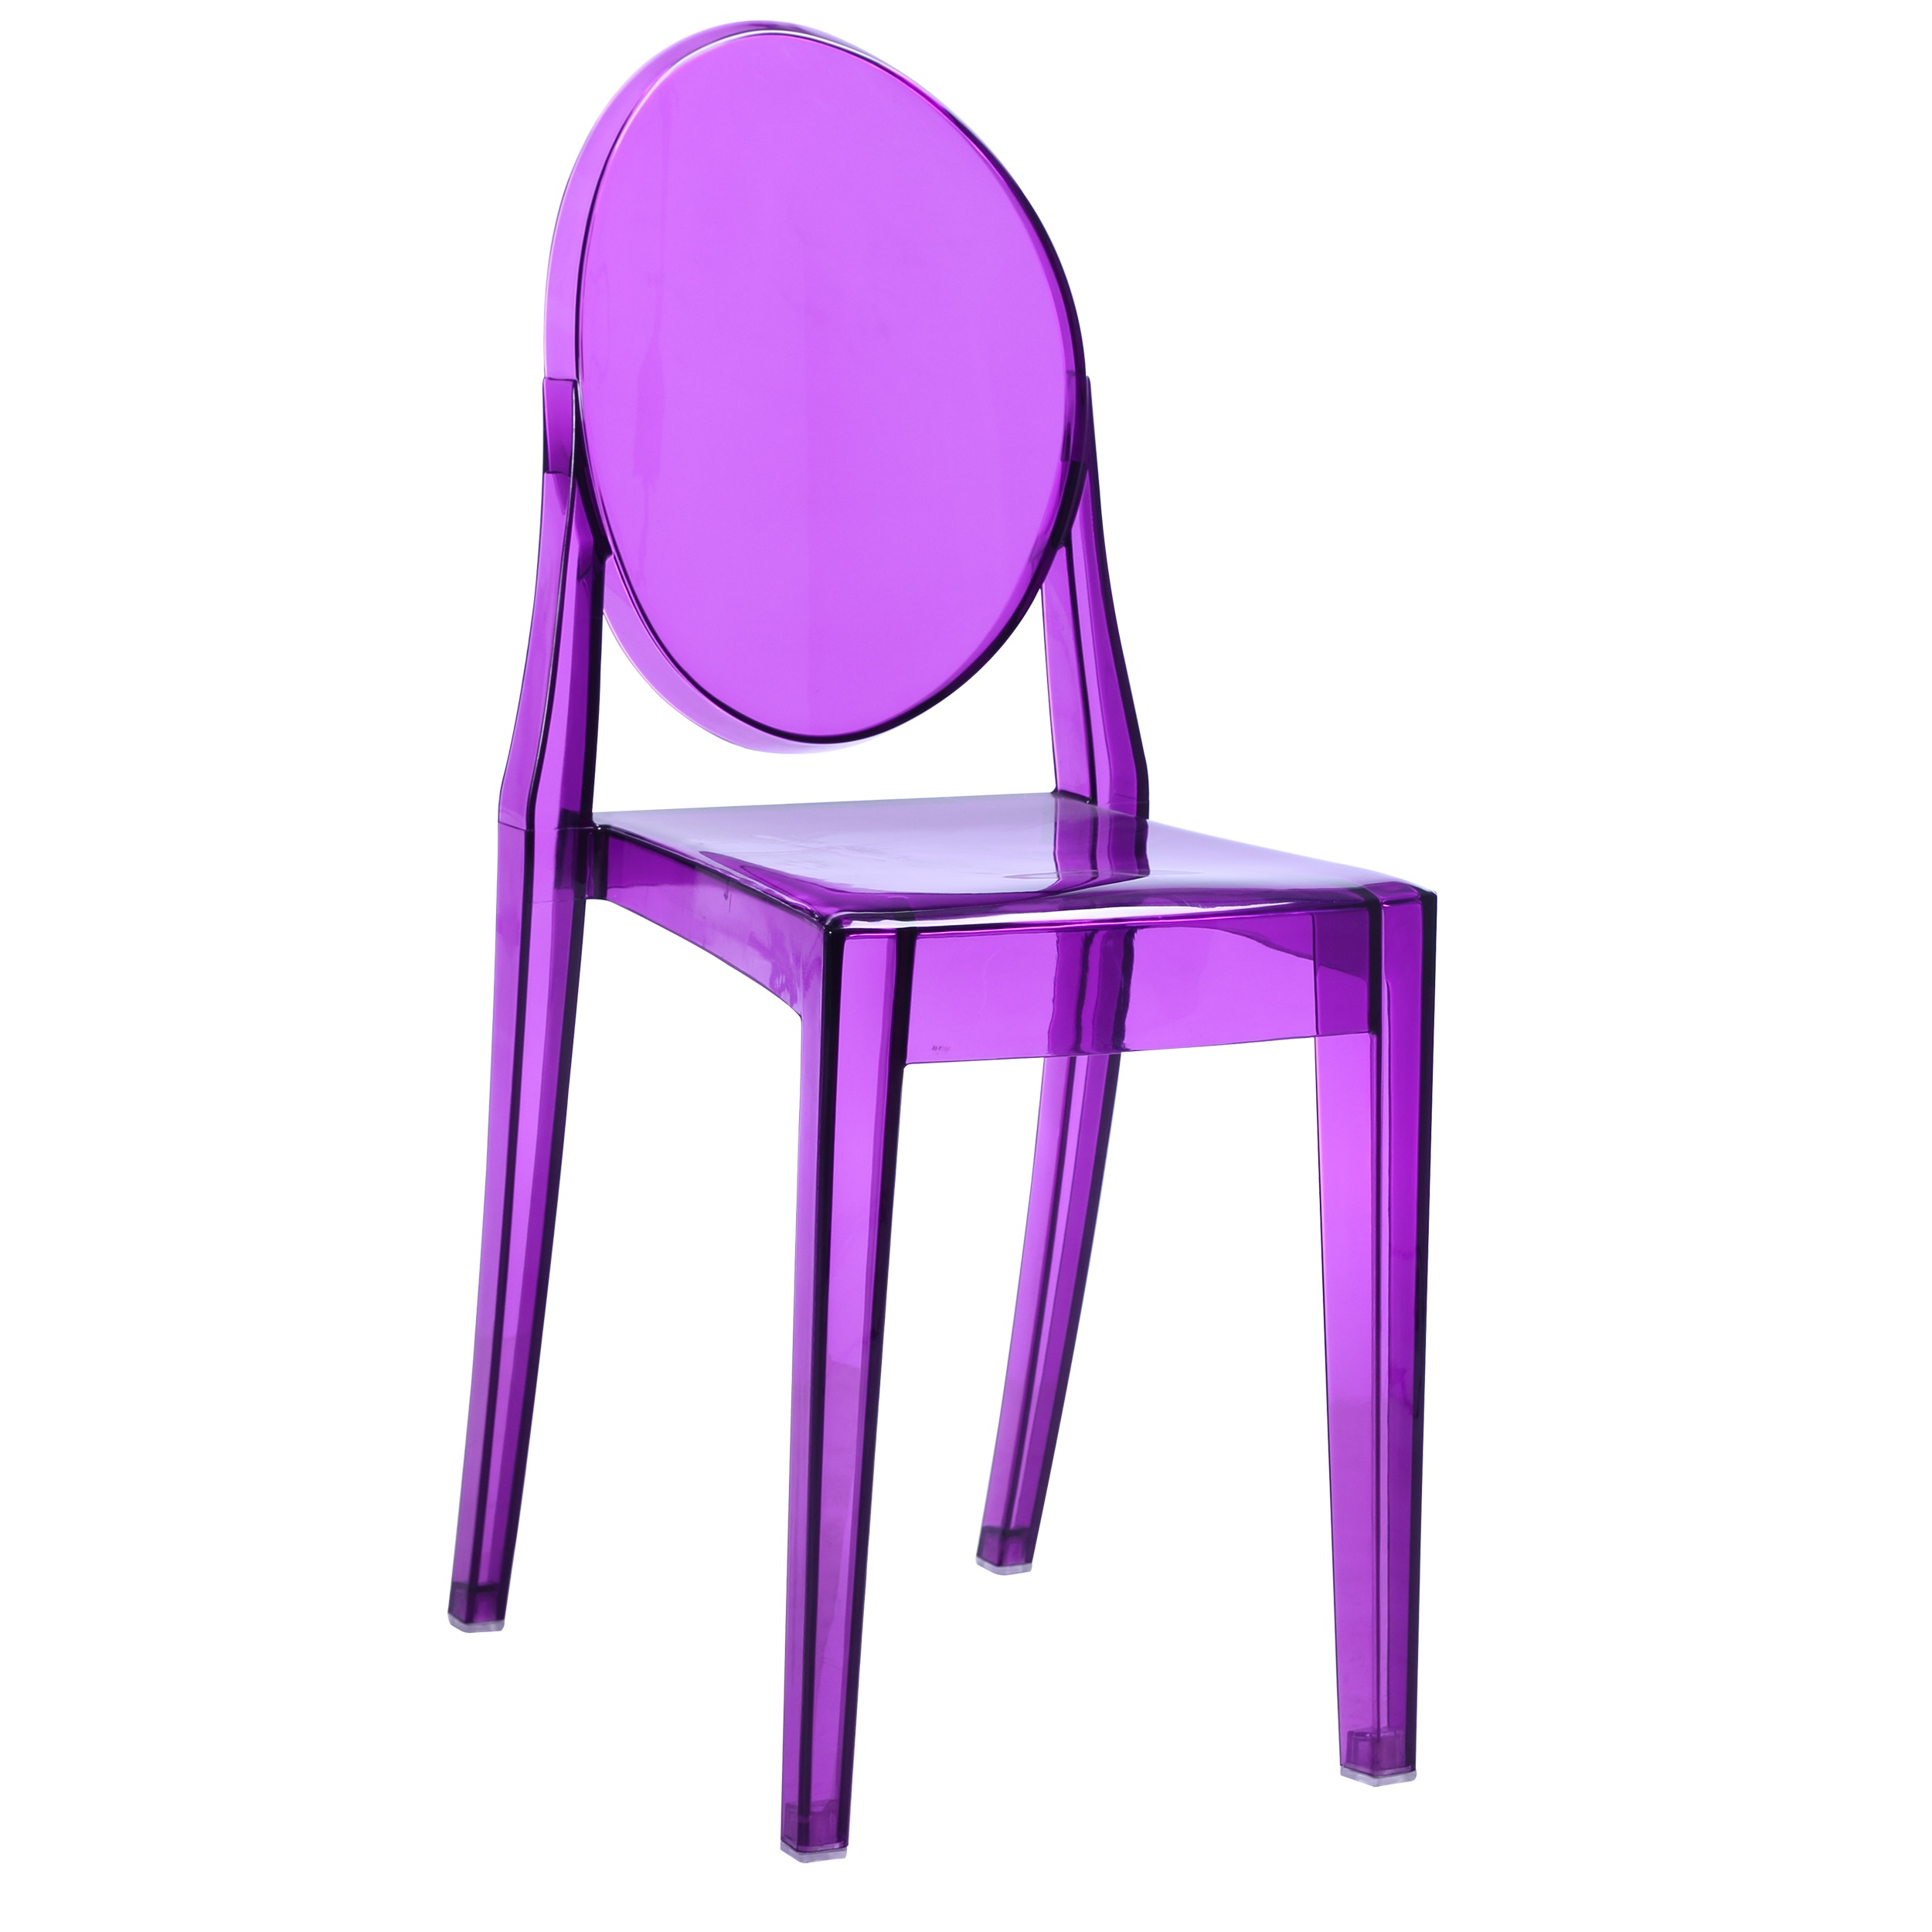 Ghost Chair Replica Replica Philippe Starck Victoria Ghost Chair